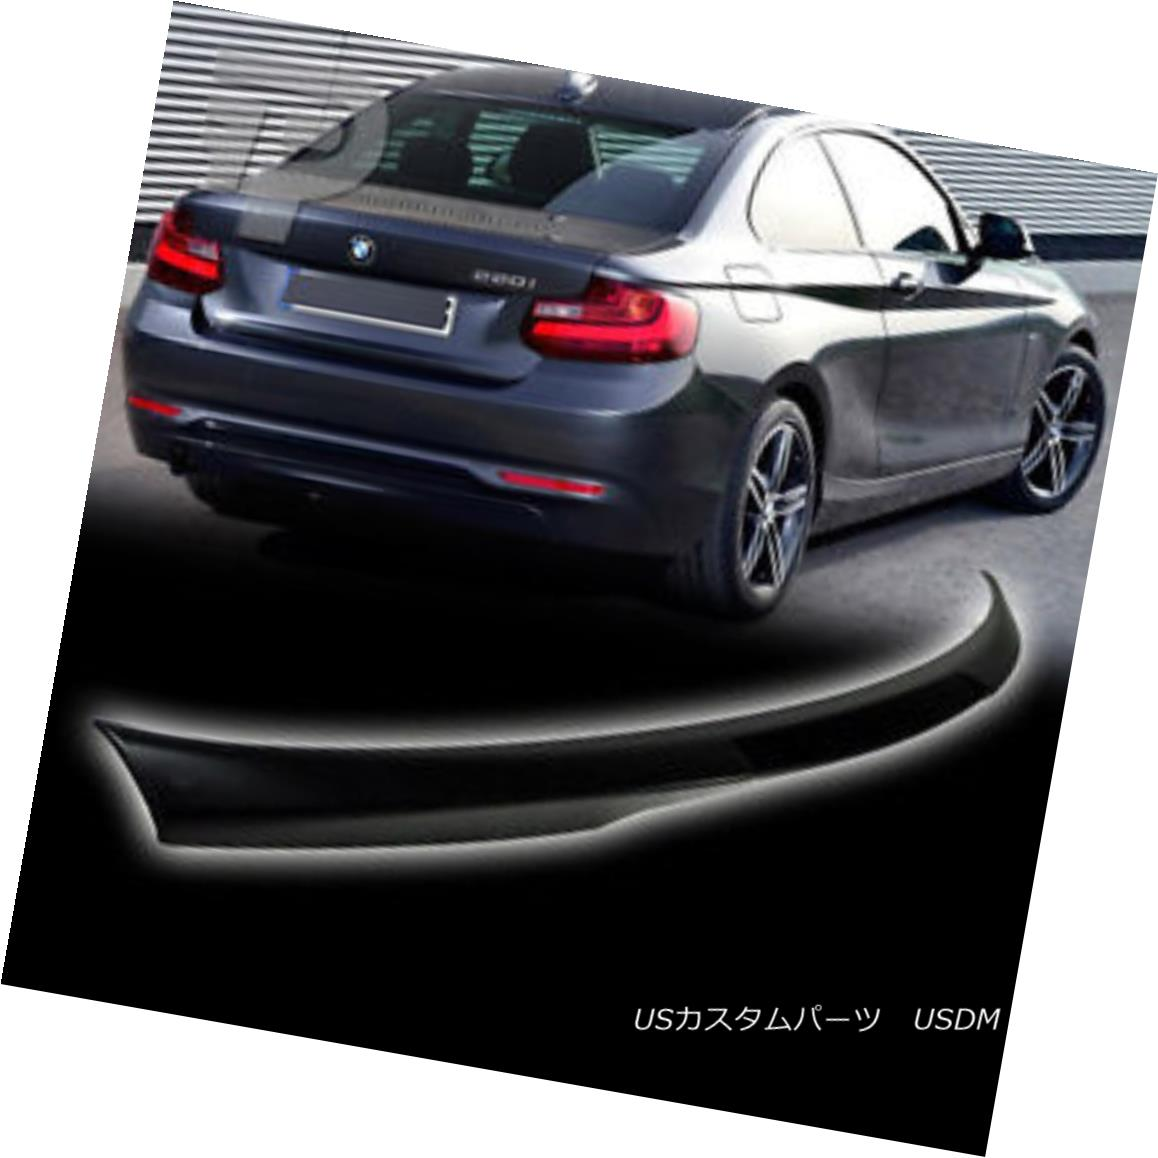 エアロパーツ Unpainted BMW 2-Series F22 2DR Coupe M4 Type Trunk Spoiler M235i 220i 220d 2016 未塗装BMW 2シリーズF22 2DRクーペM4タイプトランク・スポイラーM235i 220i 220d 2016